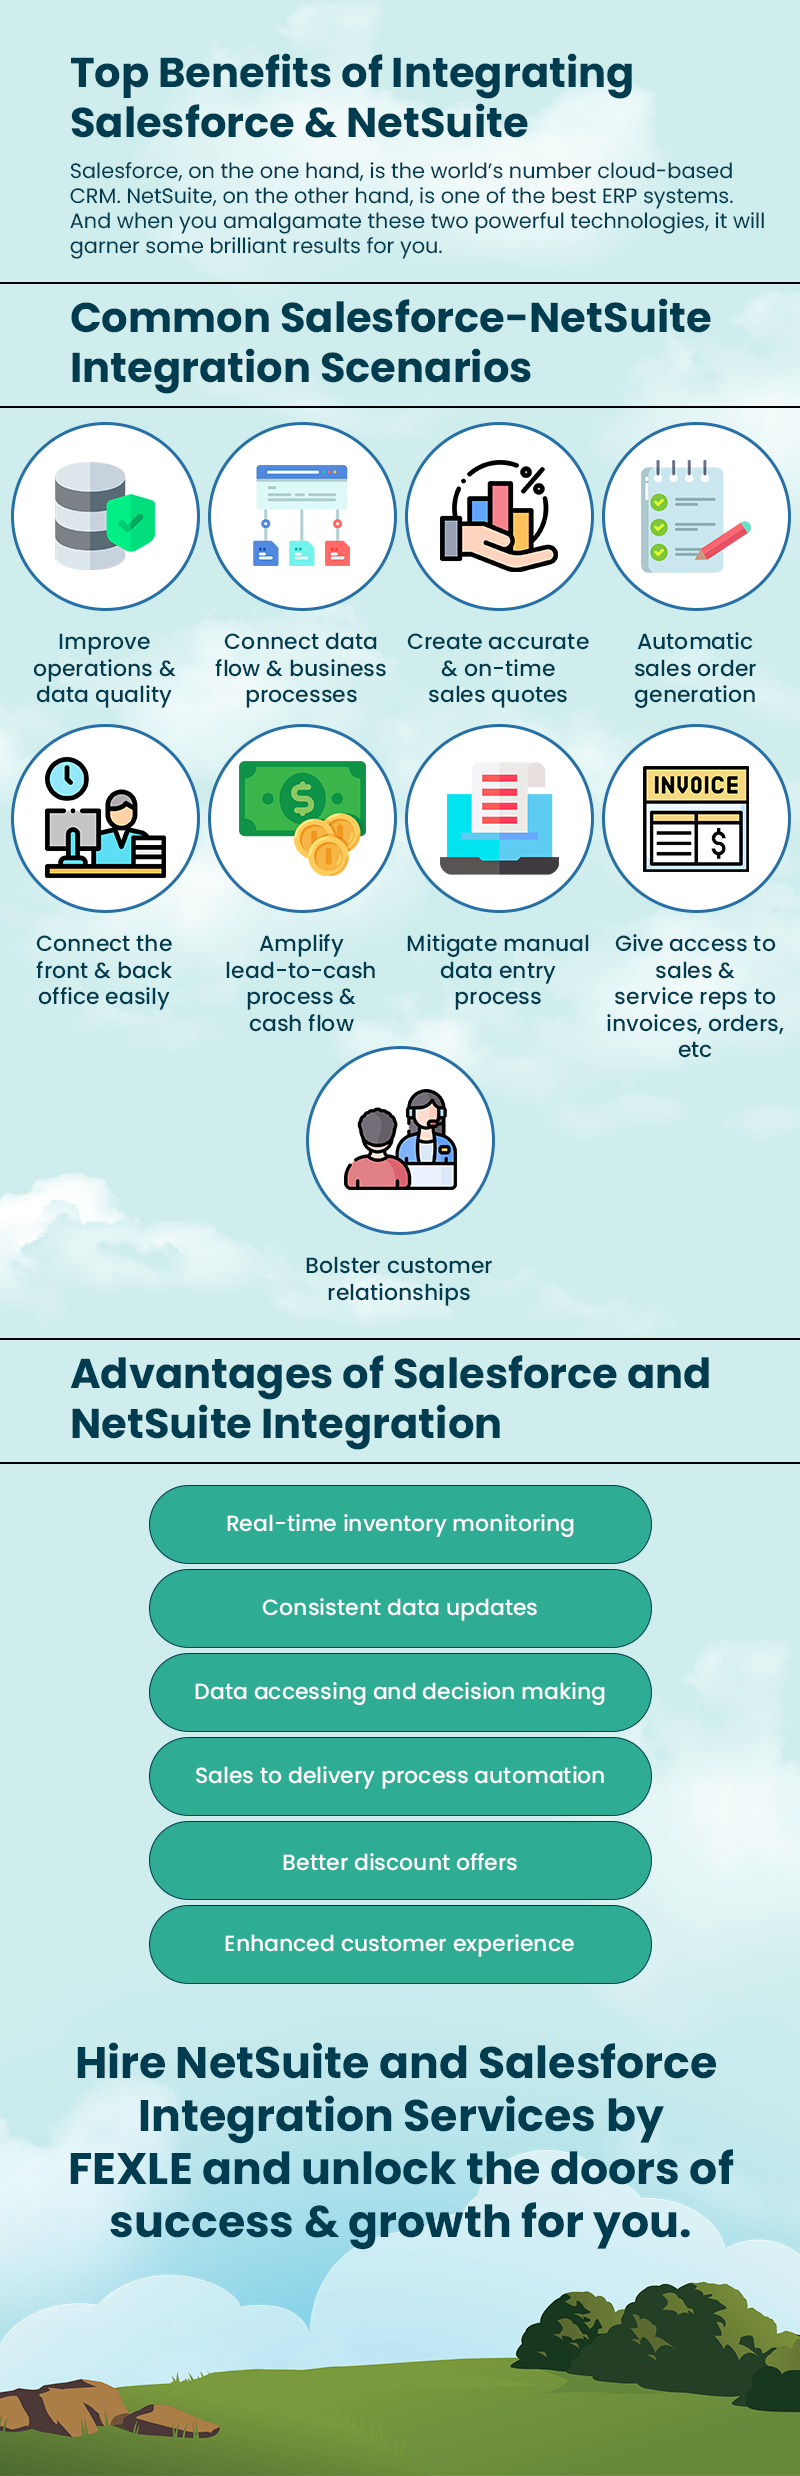 Top Benefits of Integrating Salesforce and NetSuite